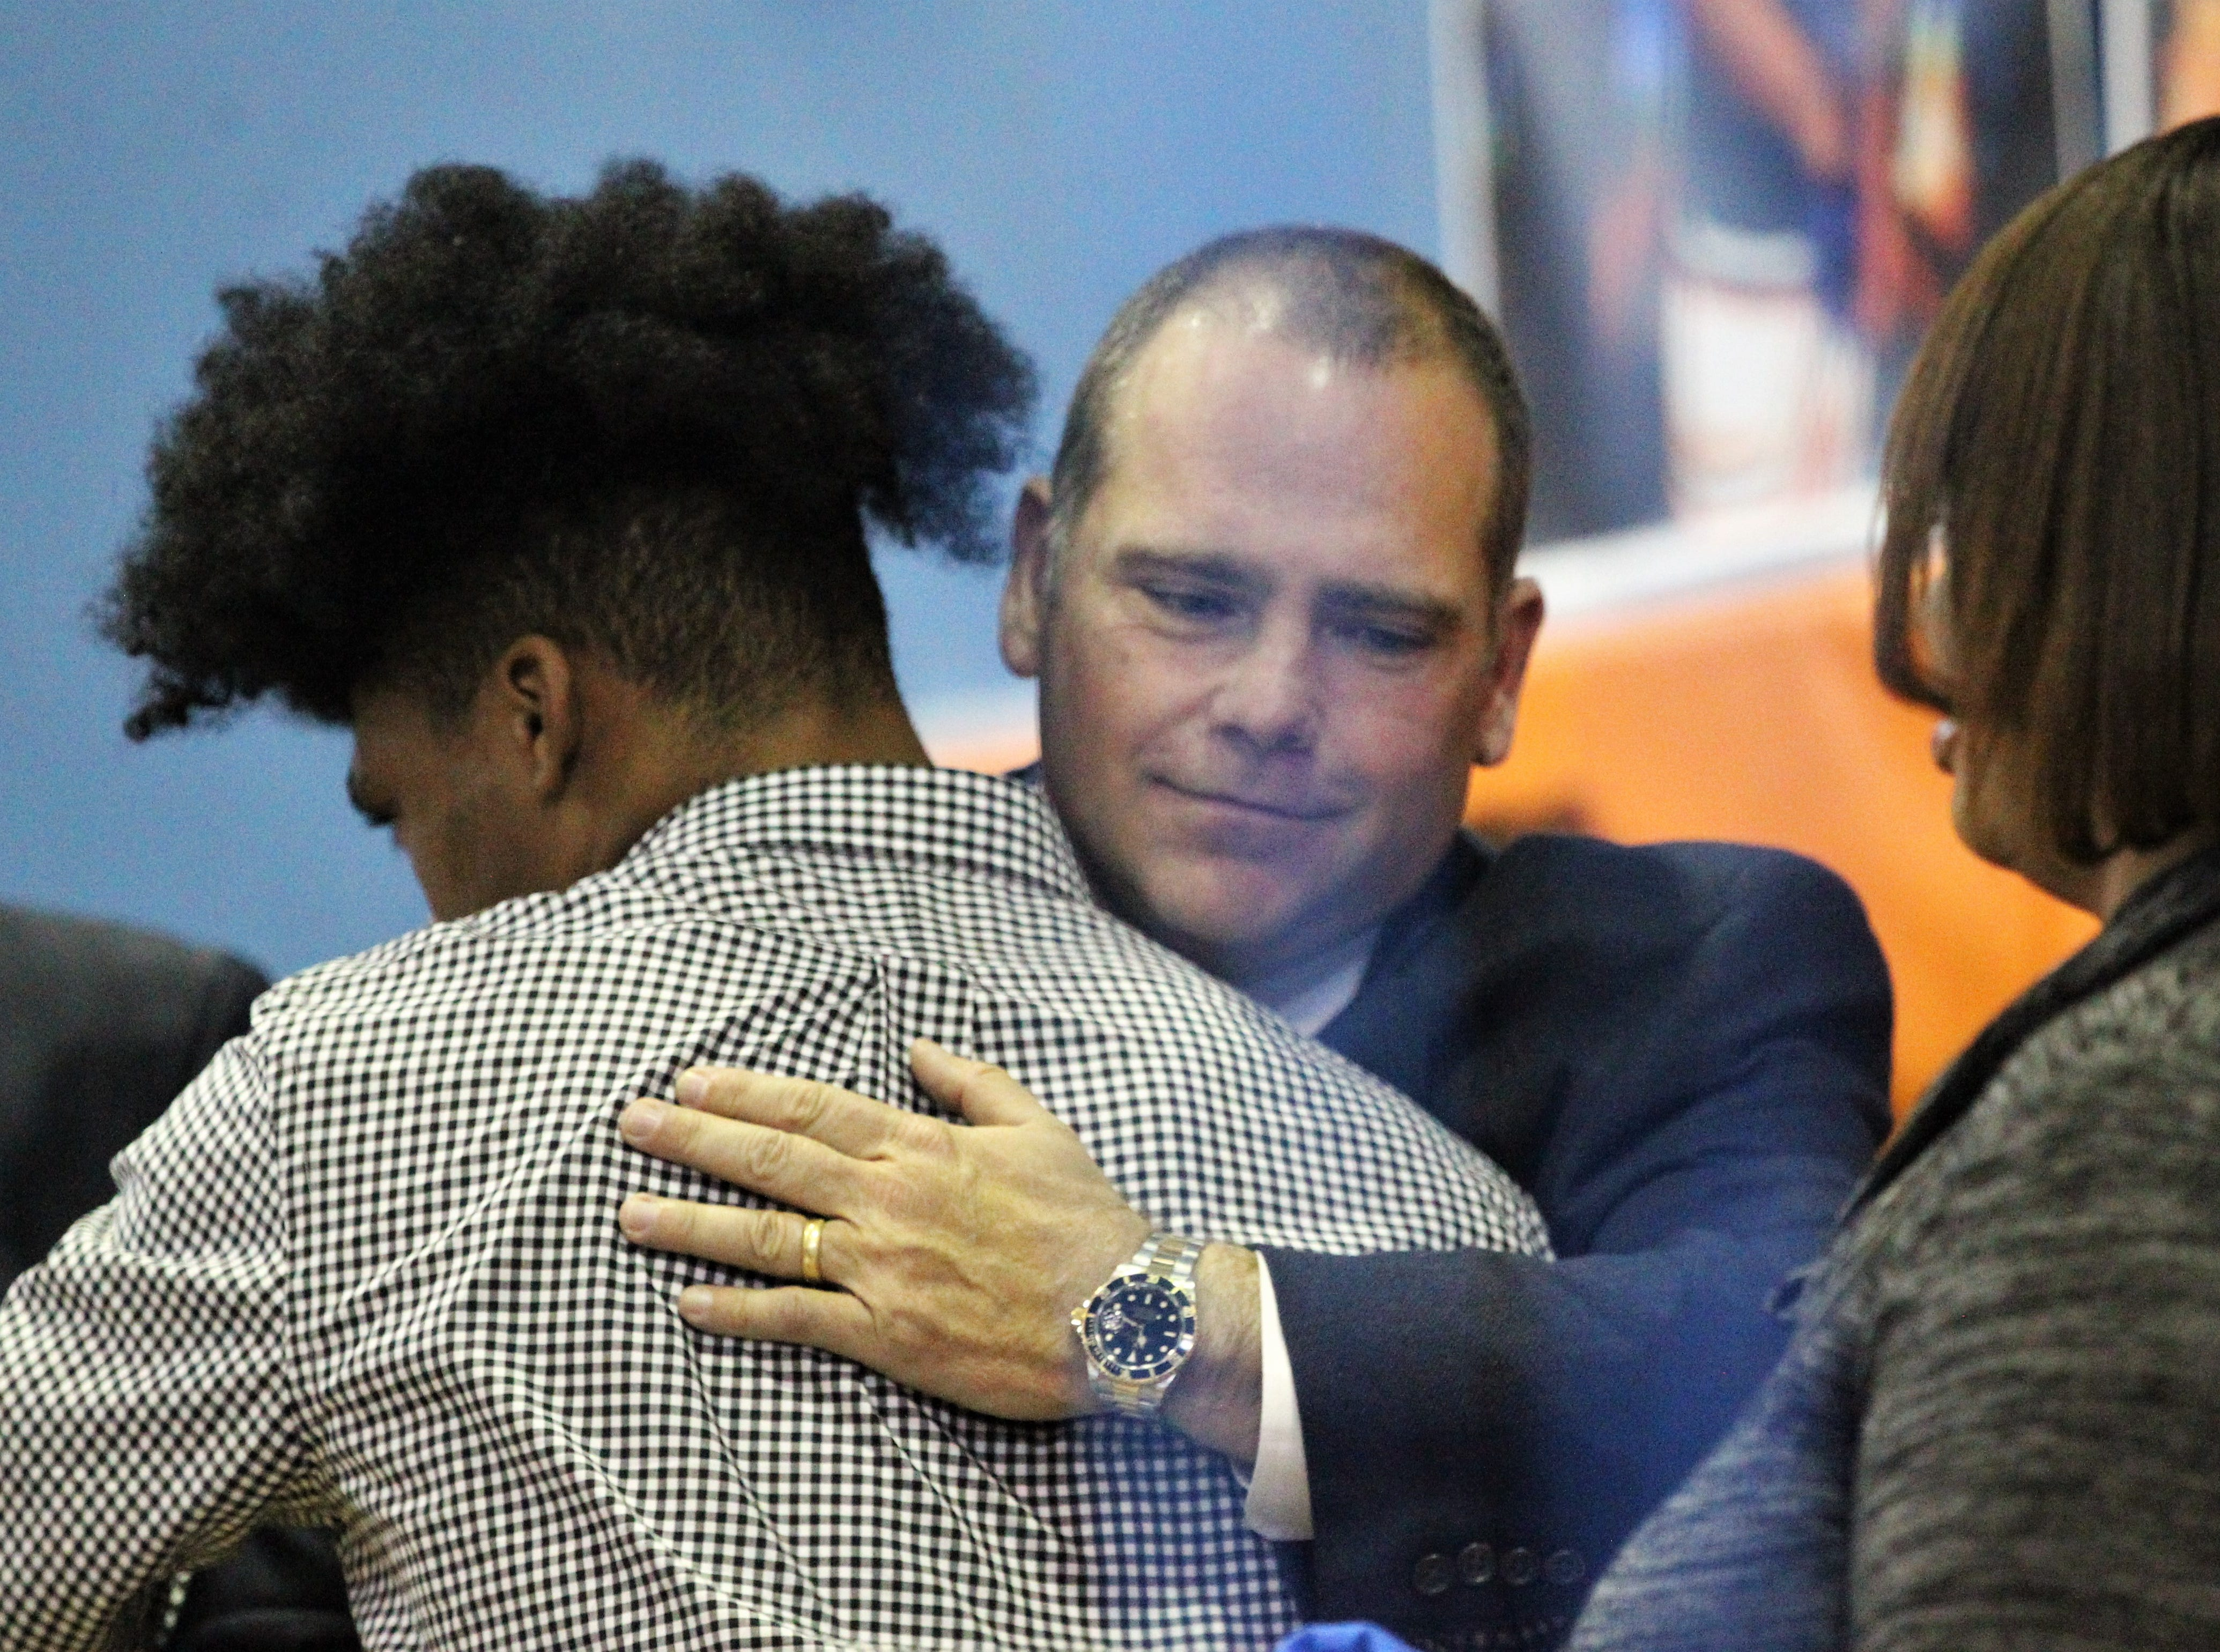 Jefferson County receiver Armon Williams gets a hug from state attorney Jack Campbell during Jefferson County's signing day ceremony on Feb. 13, 2019. Williams, who signed with Fullerton College, got emotional talking about how his coach Leroy Smith, Rev. Greg James, and Campbell helped him get his life turned around after he committed a crime and spent time in jail.